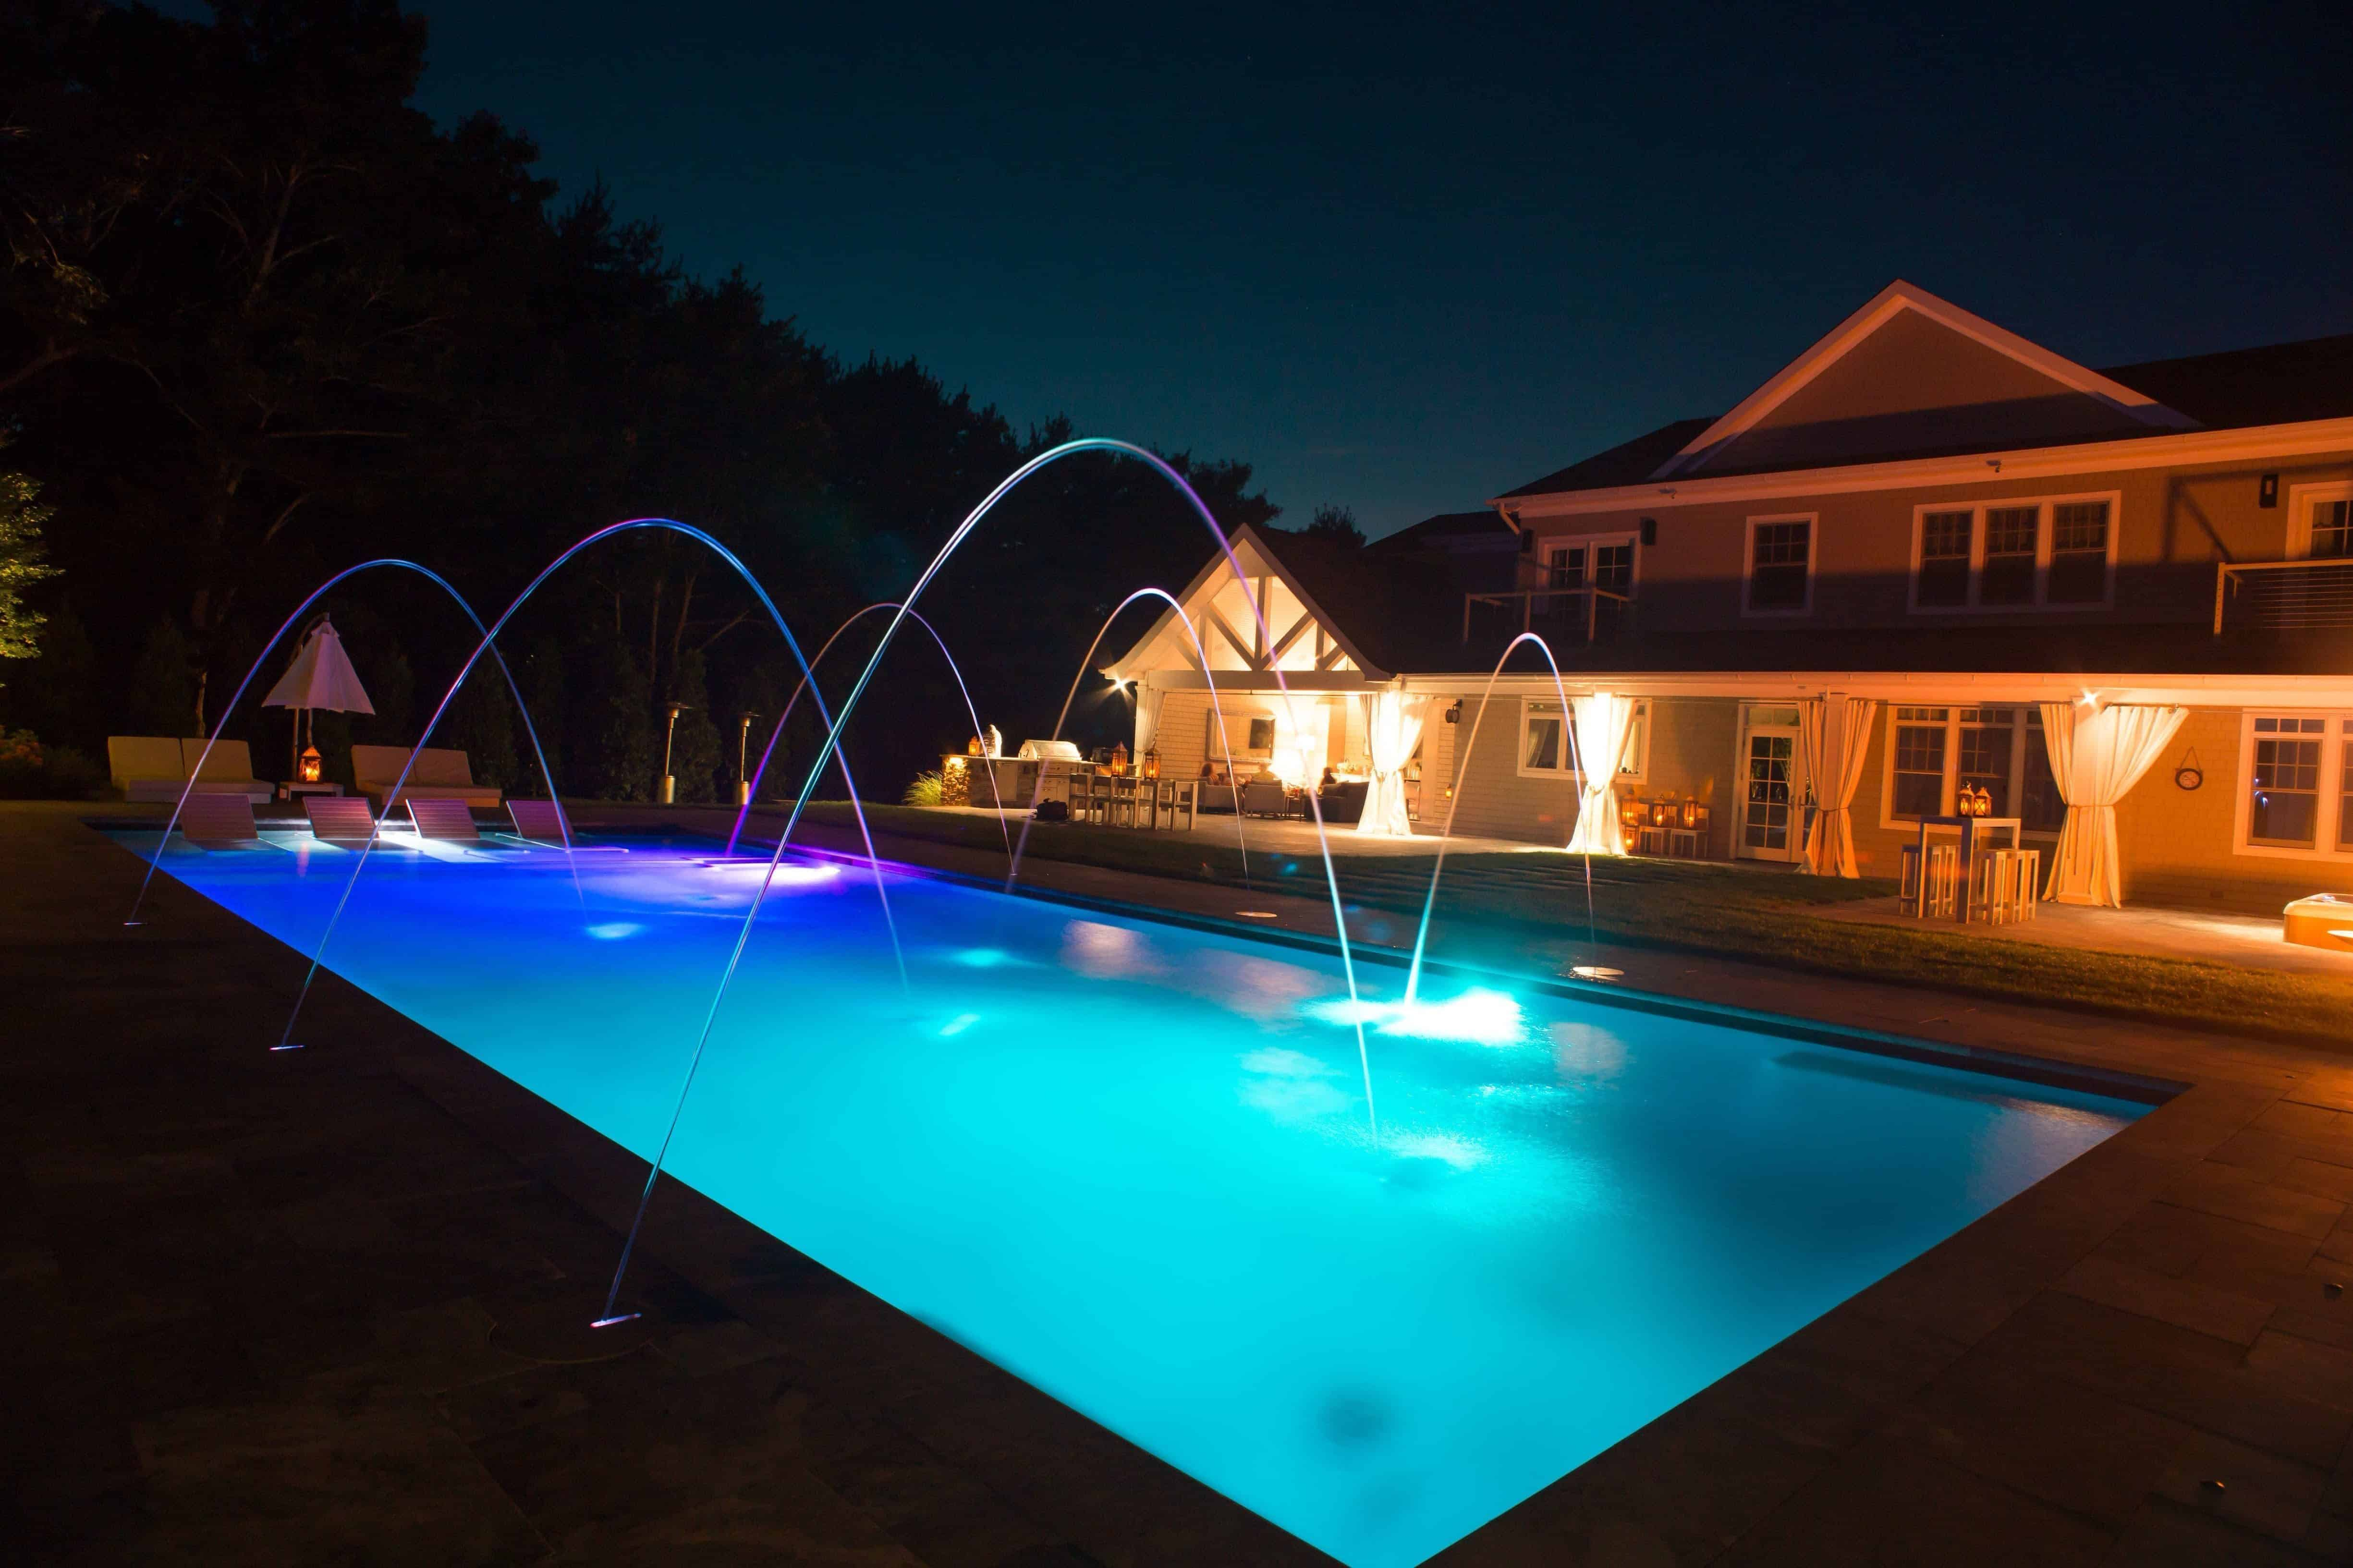 Led Lighting With Jandy Laminar Jets In Gunite Pool